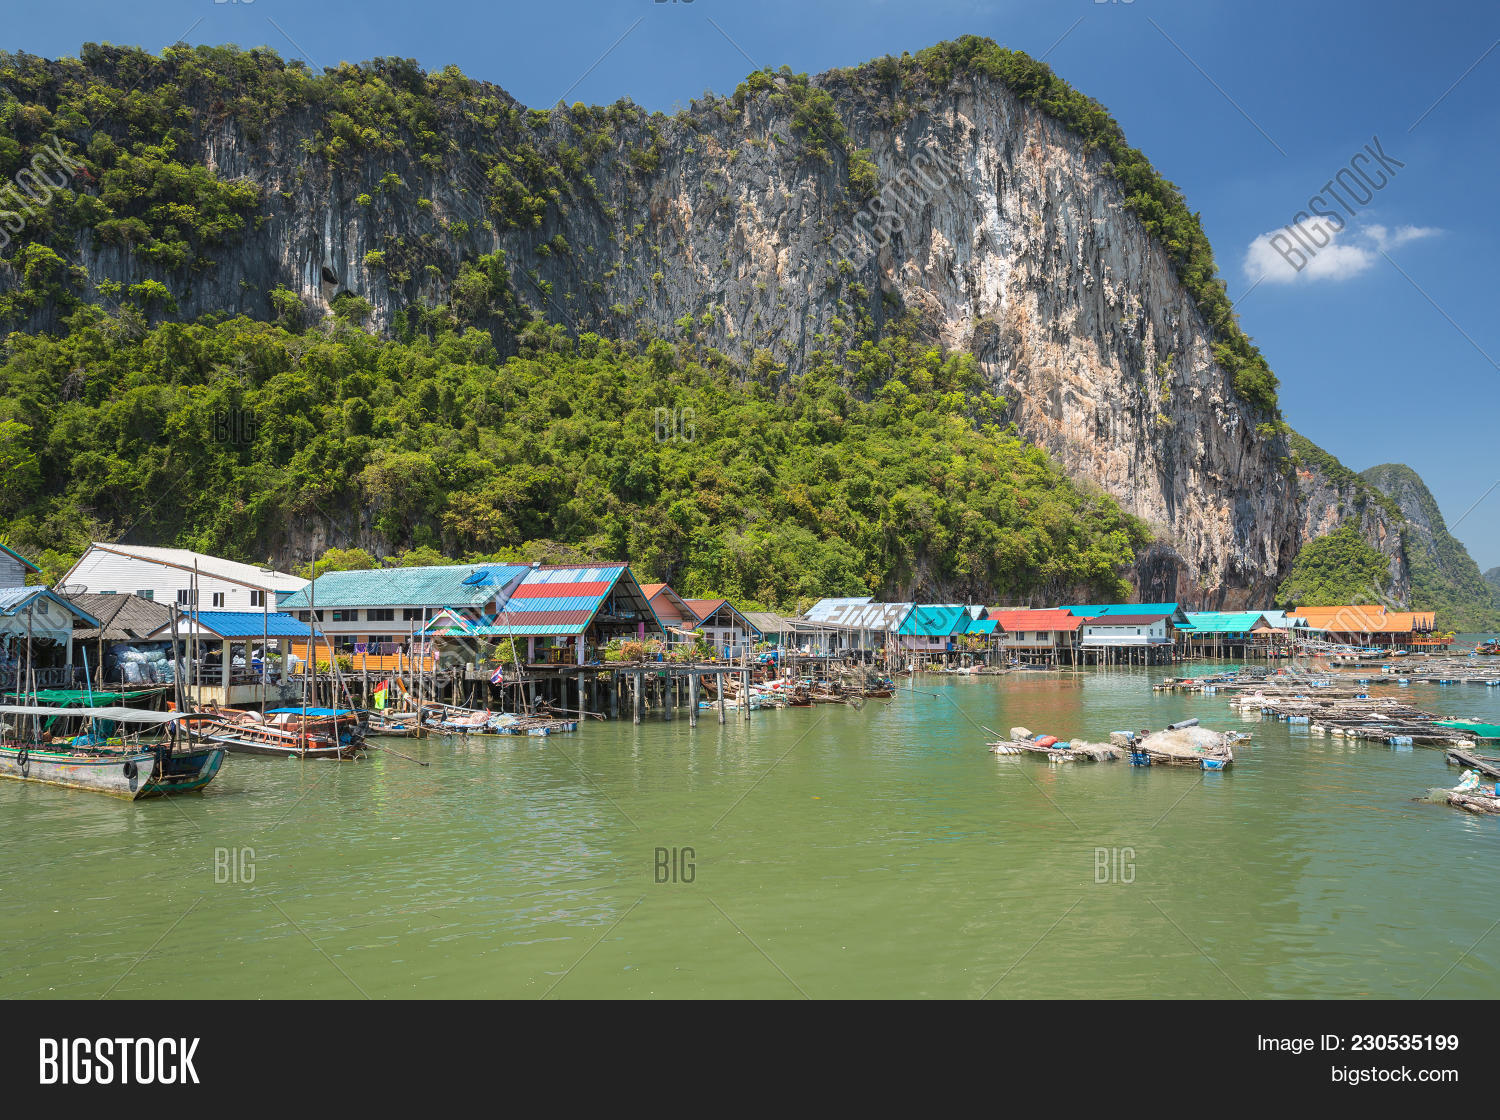 Asia,Island,Sea,Sun,archipelago,bay,beautiful,blue,boat,cliff,coast,culture,fisherman,fishing,floating,football,green,holiday,ko,koh,landmark,landscape,mountain,muslim,nature,nga,ocean,panorama,panyee,panyi,park,phang,phuket,pitch,rock,scenery,sky,stilts,stone,summer,thai,thailand,tour,traditional,travel,trip,tropical,vacation,village,water